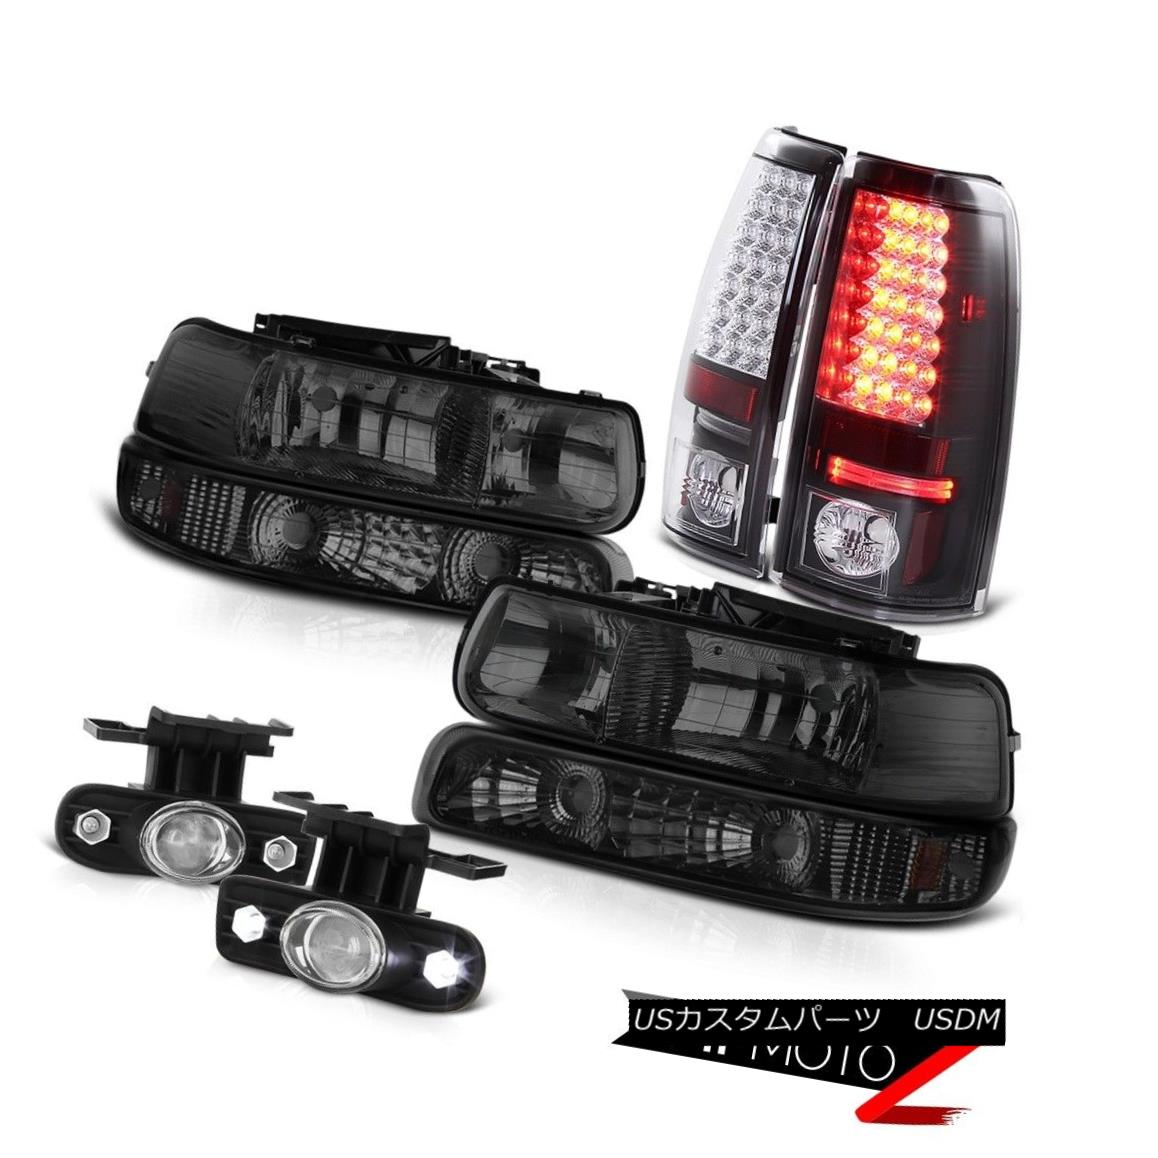 ヘッドライト 99-2002 Silverado lamps Headlights Lamp Brake Tail Lights Chrome Clear Foglights 99-2002 SilveradoランプヘッドライトランプブレーキテールライトChrome Clear Foglights